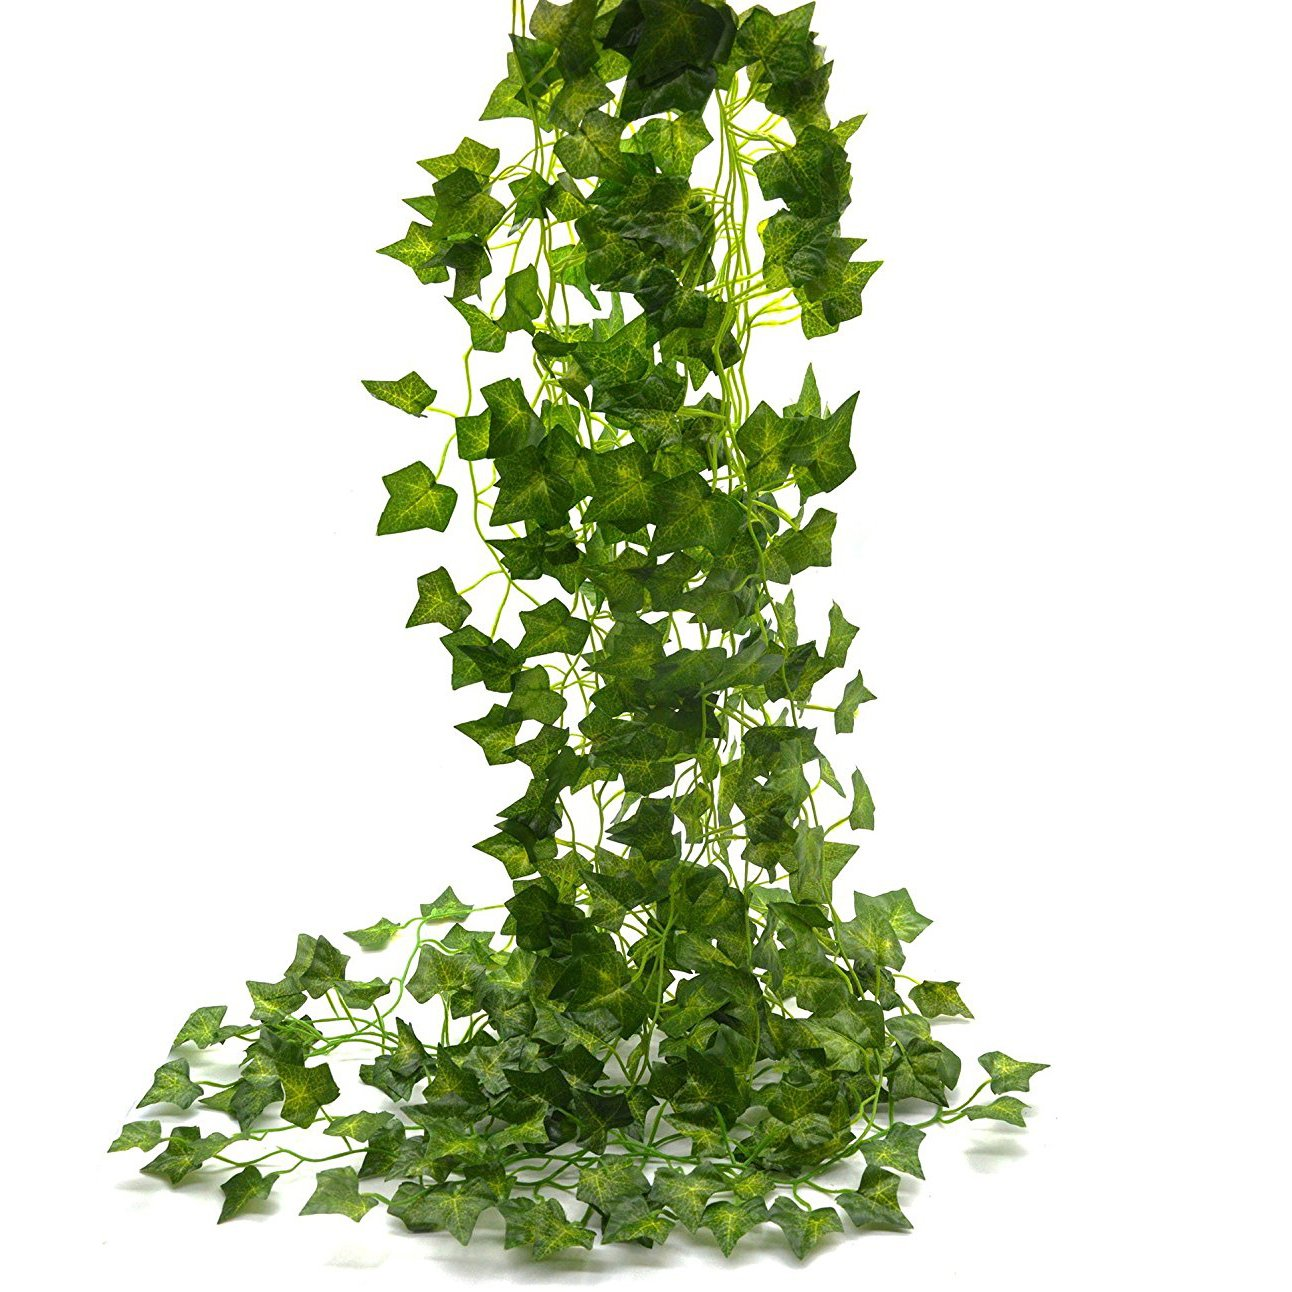 Beebel Ivy Leaves 85Ft 12 strands Artificial Fake Leaves Hanging Vines Plant Leaves Garland Home Garden Poison Ivy Costume